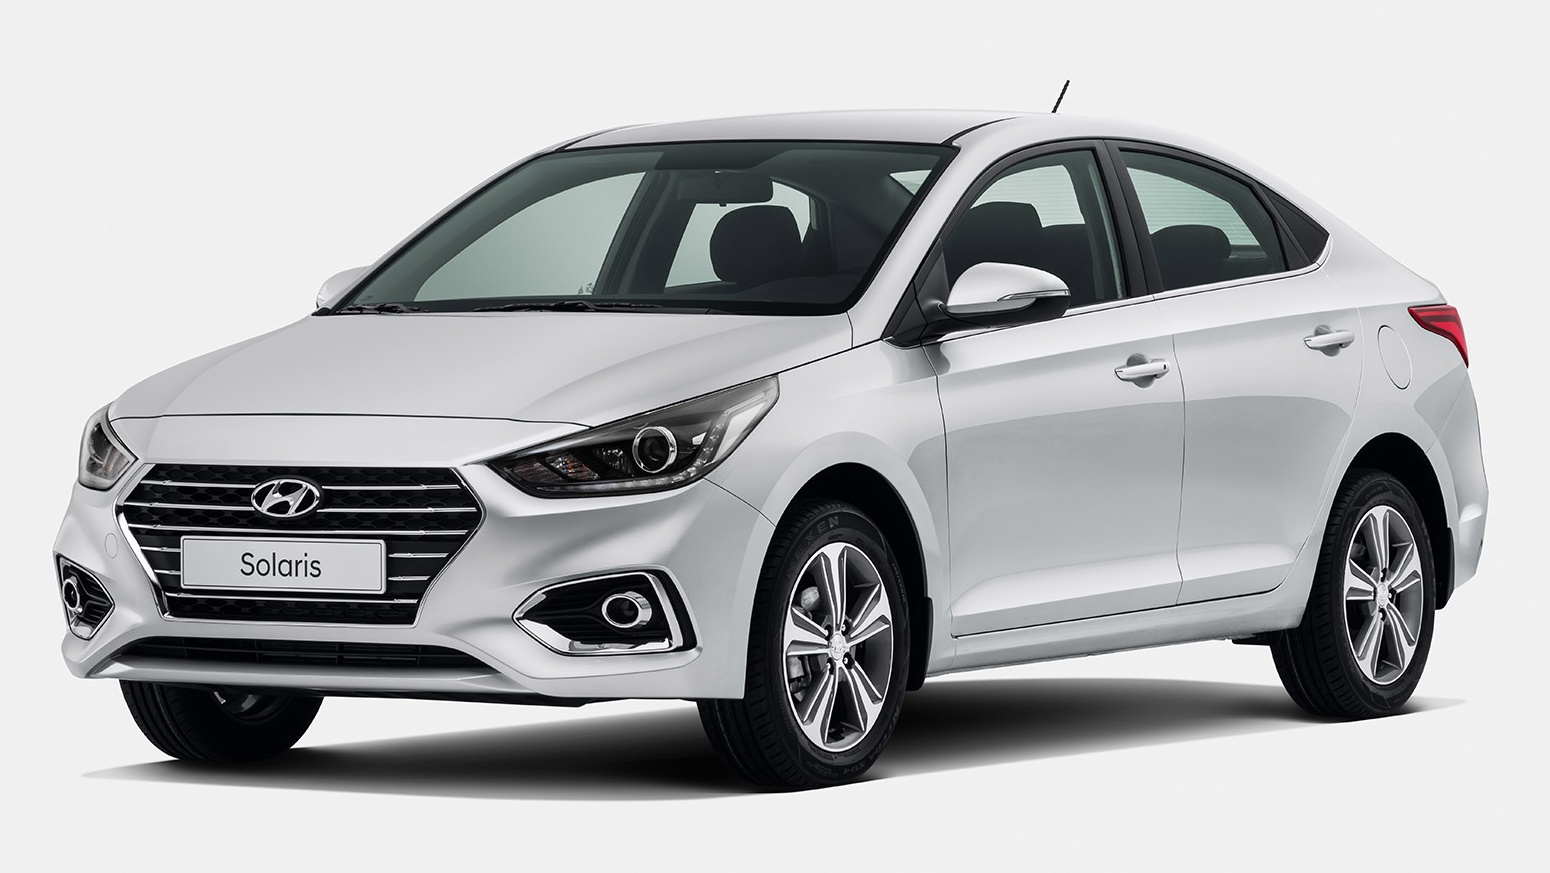 2018 Hyundai Accent teased, to be unveiled Feb 16 Image 613921